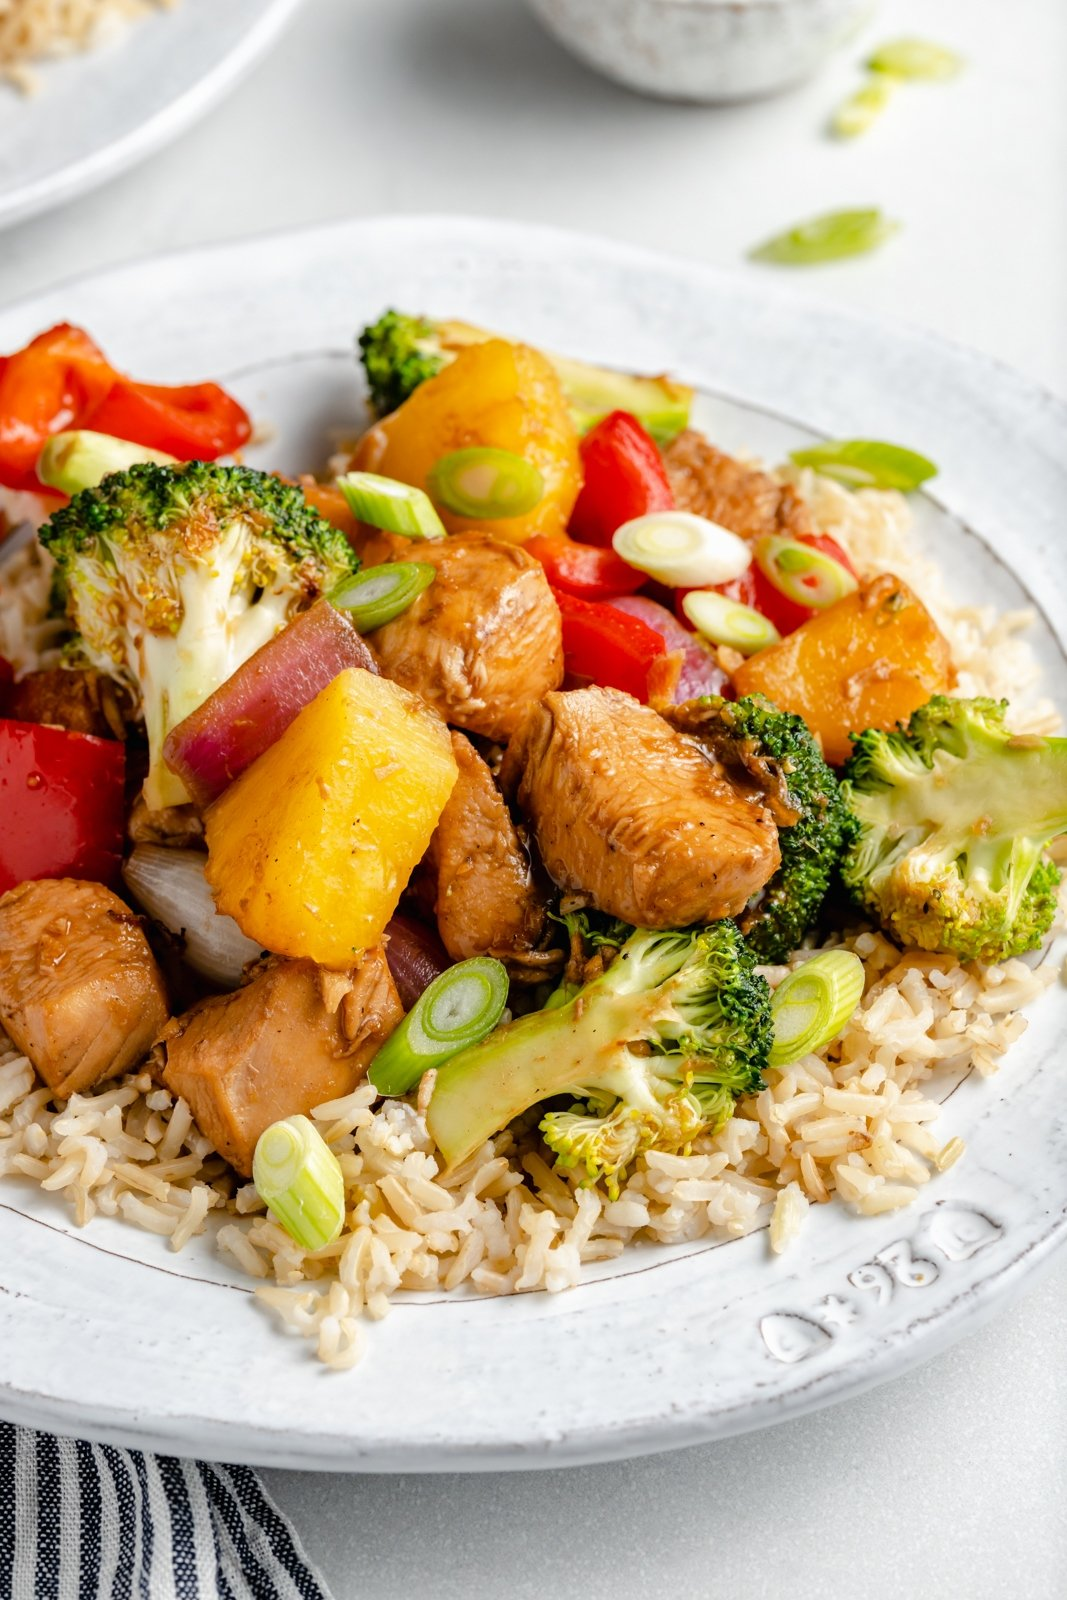 pineapple chicken stir fry with broccoli on a plate